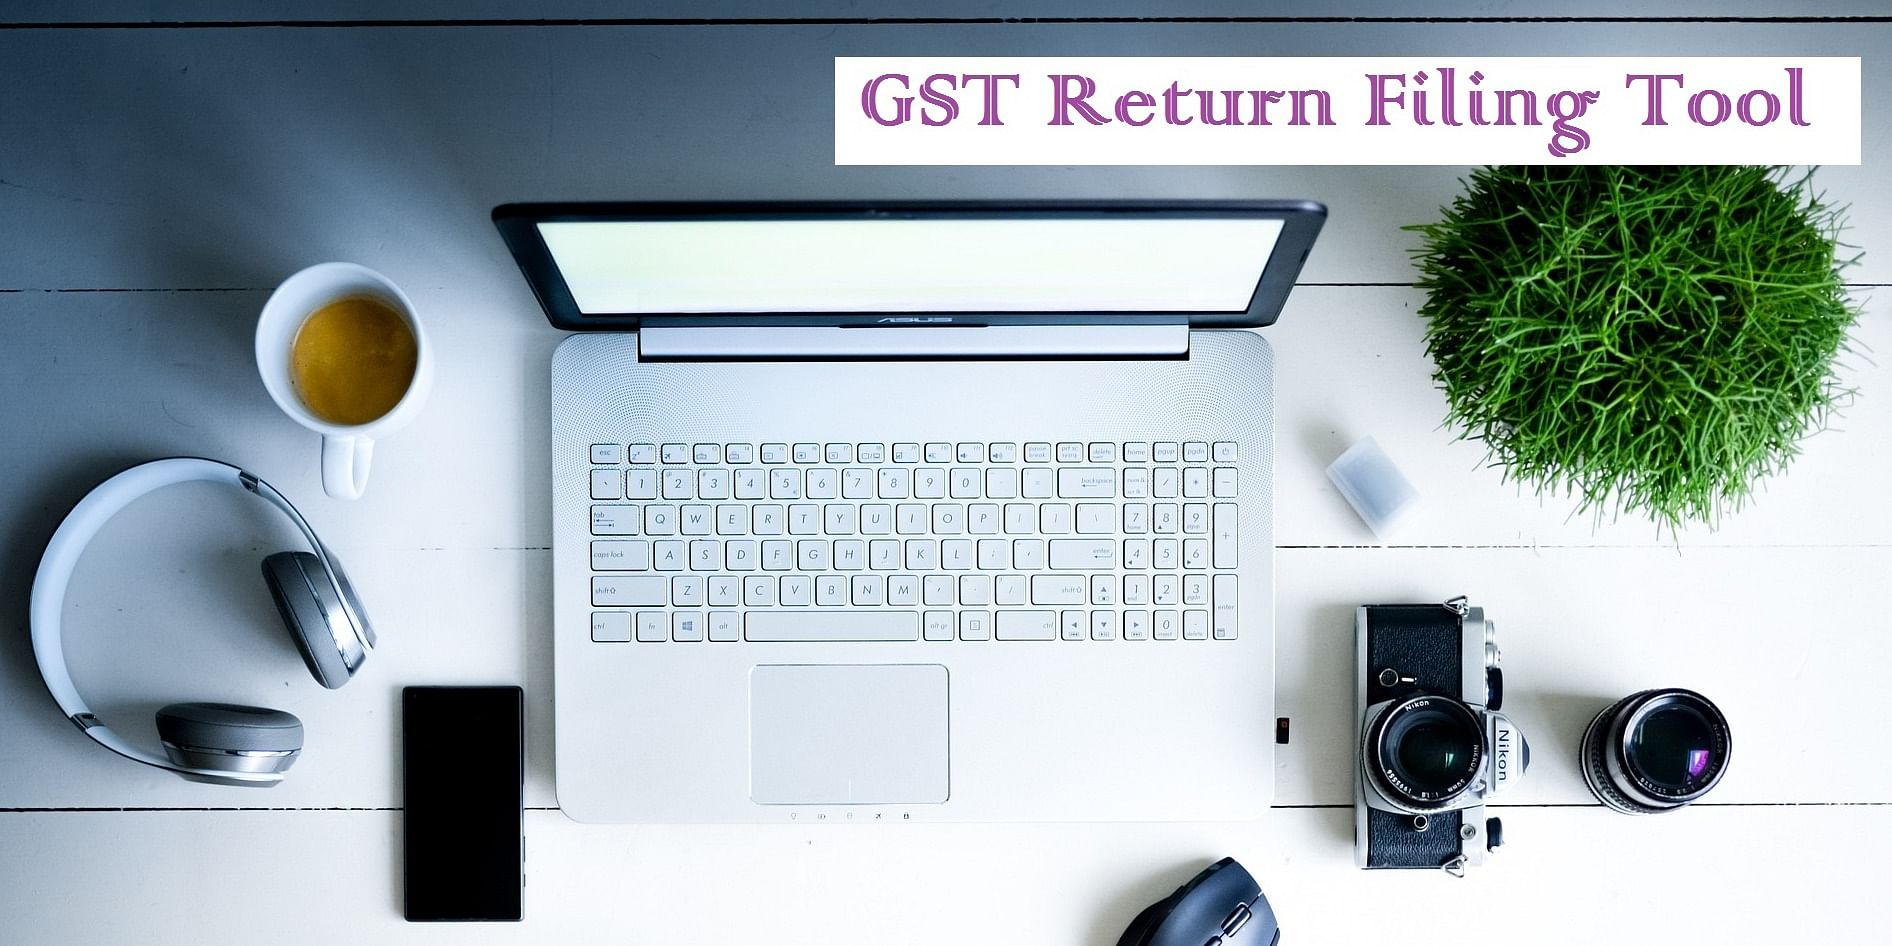 E-filing of the returns using reliable GST return filing tool by GST Keeper